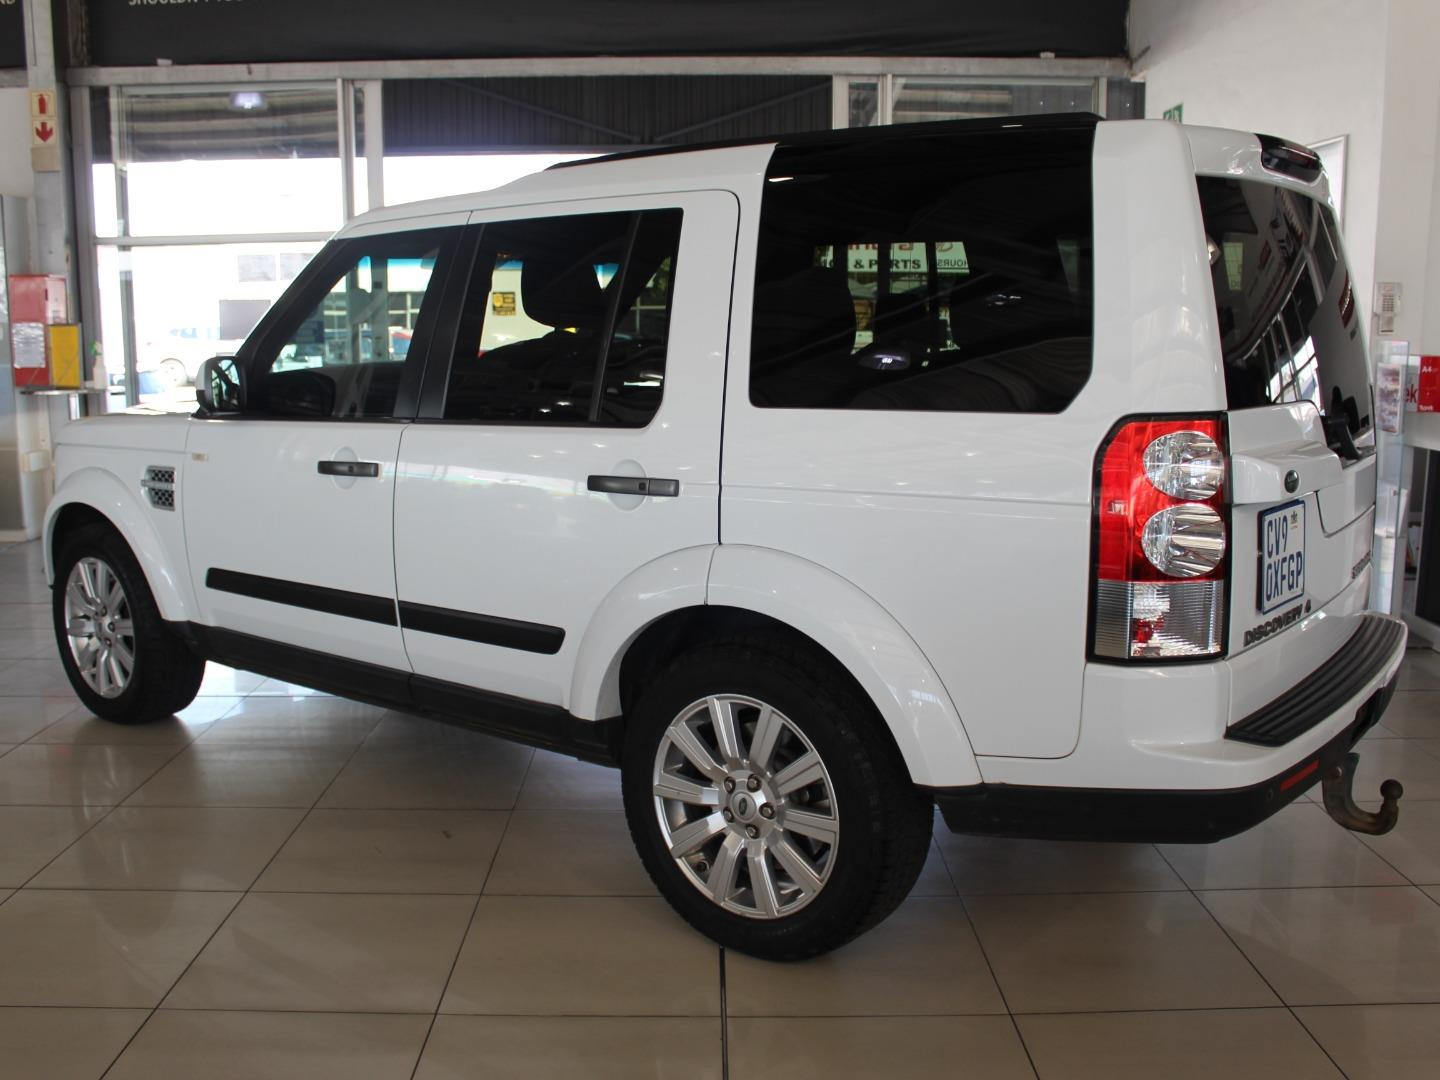 2012 Land Rover Discovery 4 SDV6 HSE- Picture 3